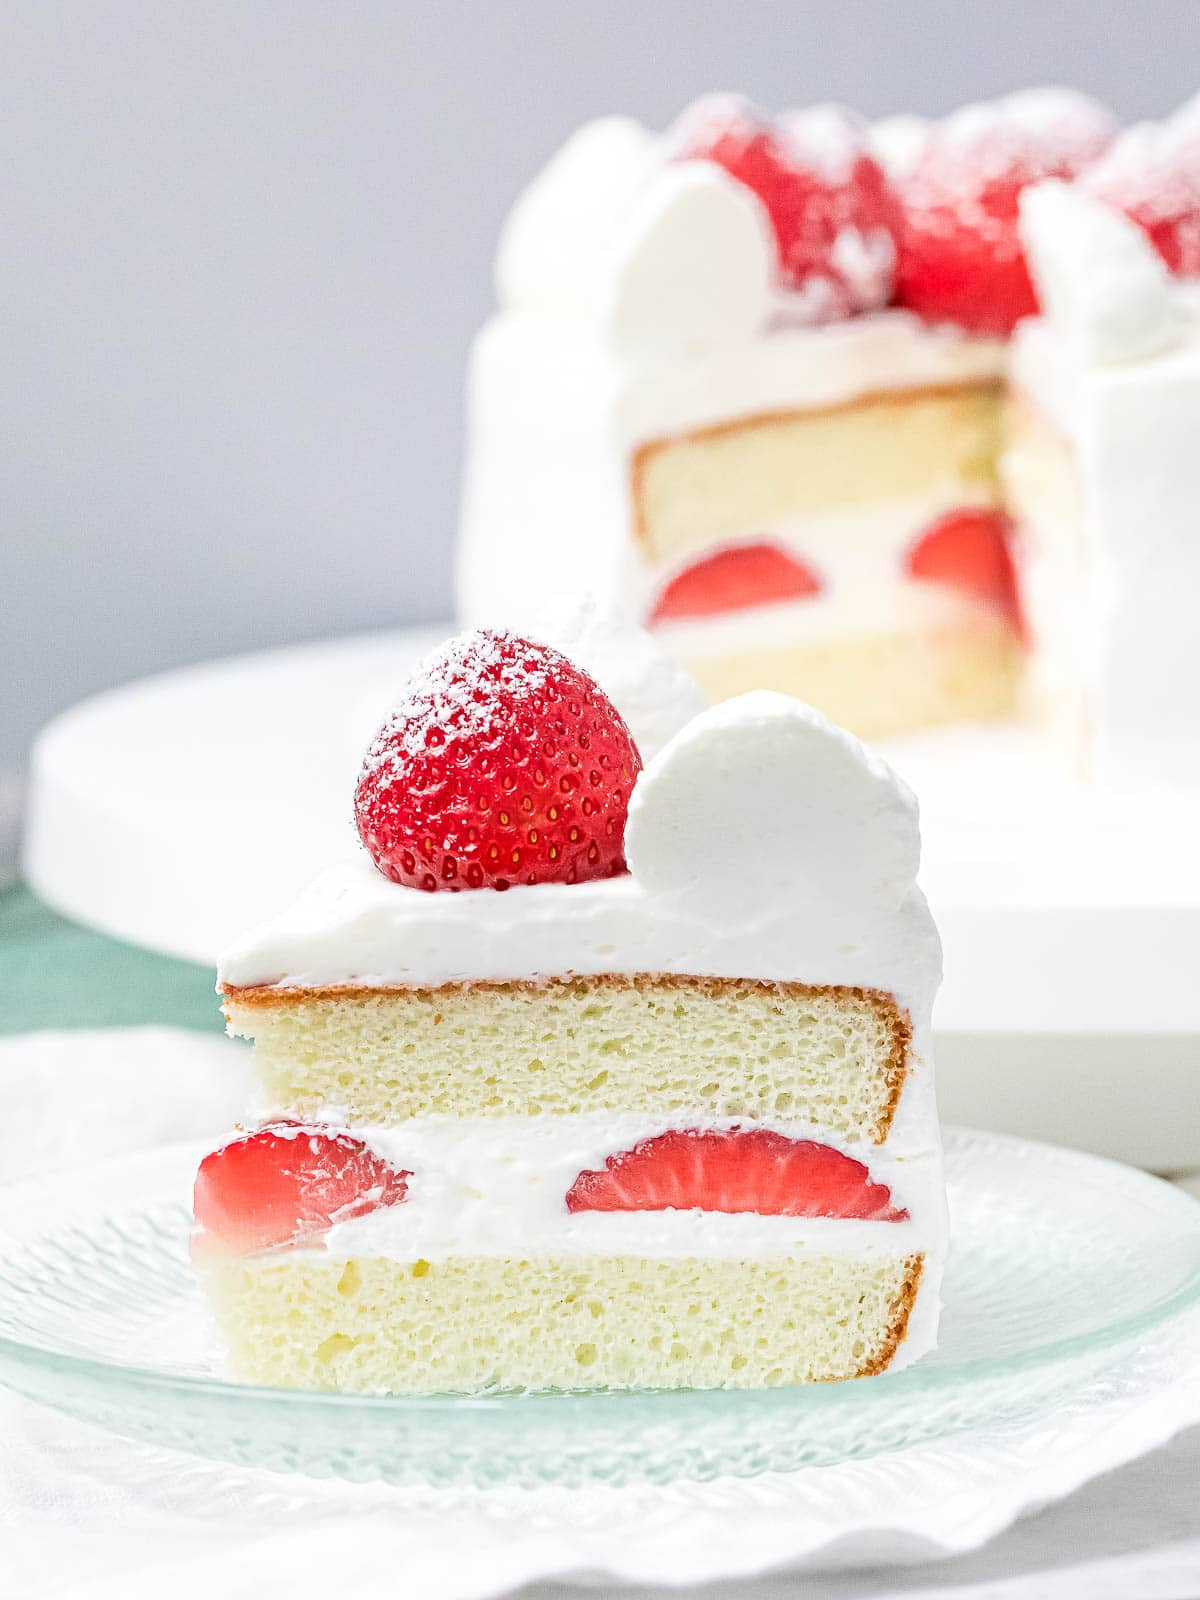 a slice of Japanese strawberry sponge cake on a plate decorated with a whole strawberry and fresh cream